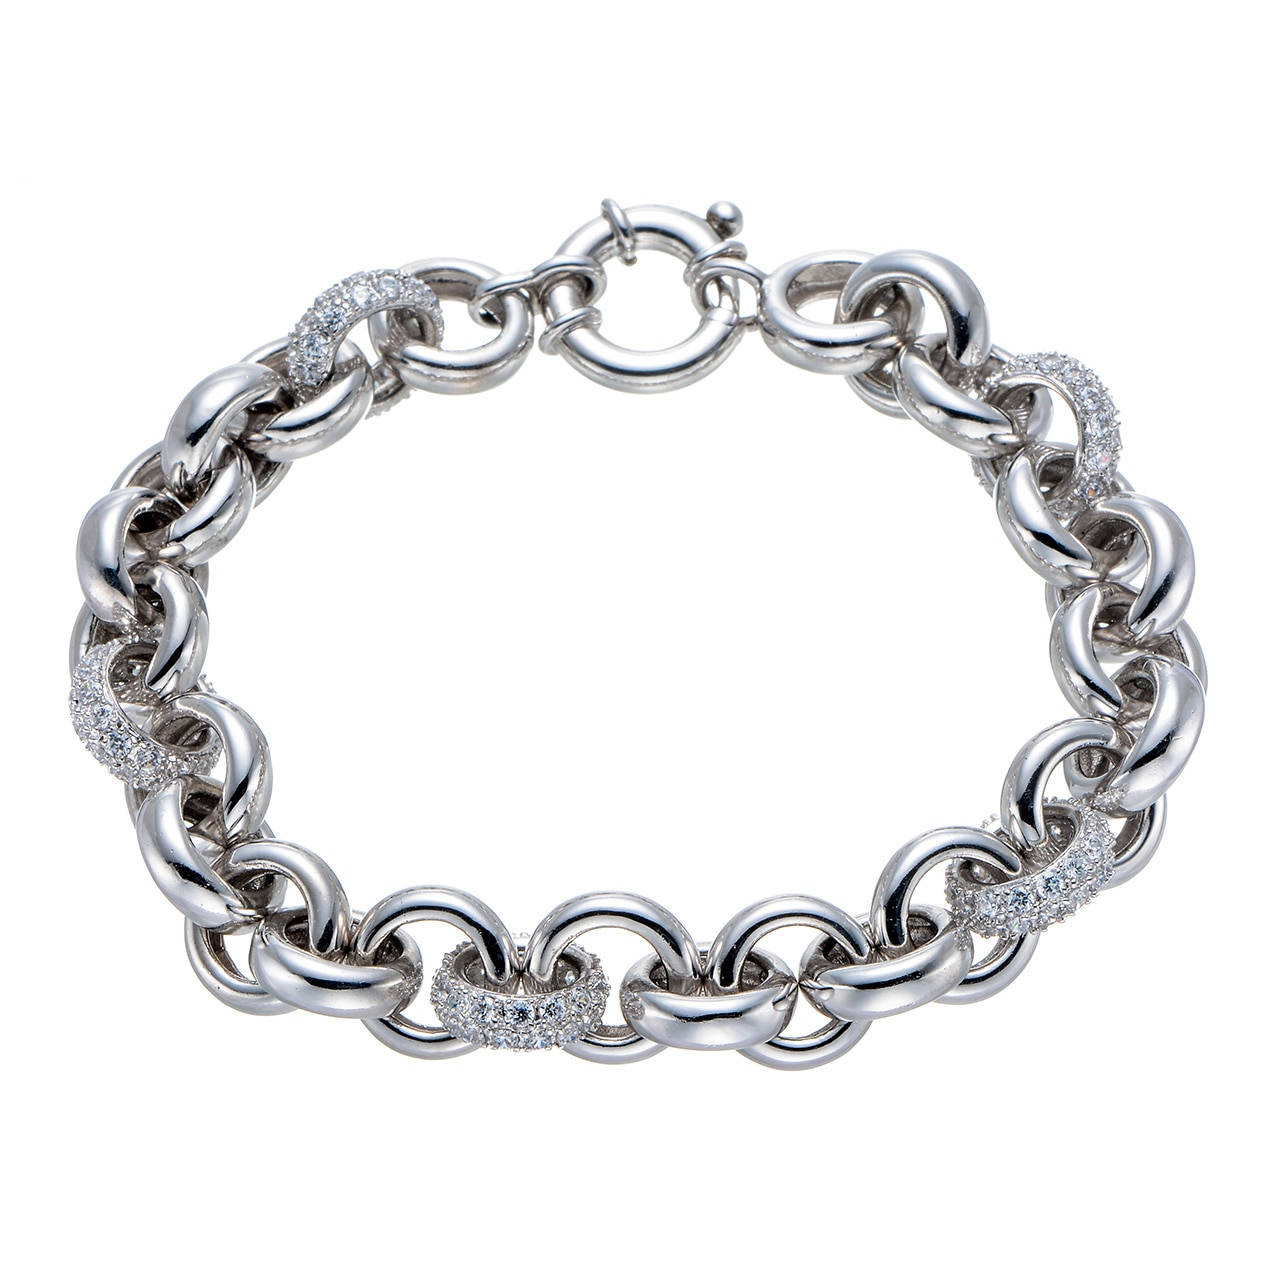 Review Cubic Zirconia Rhodium Over Sterling Silver Bracelet Natural charm fine jewelry for women plain bangle jewellery